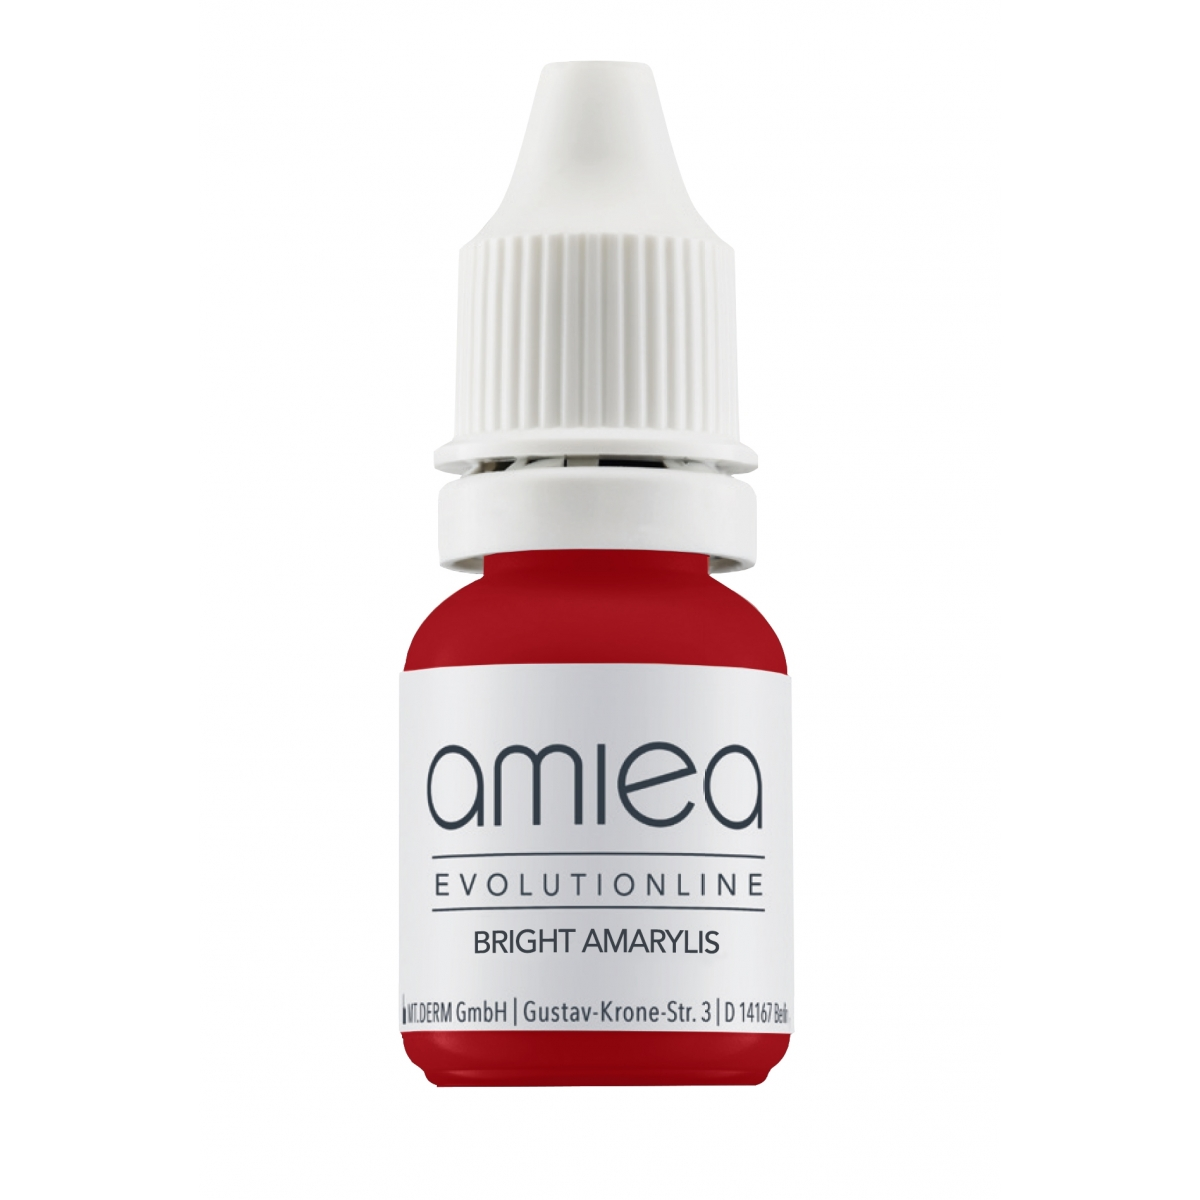 EVOLUTION LINE (5ml) - PIGMENT BRIGHT AMARYLIS EVOLUTIONLINE AMIEA (5 ml)